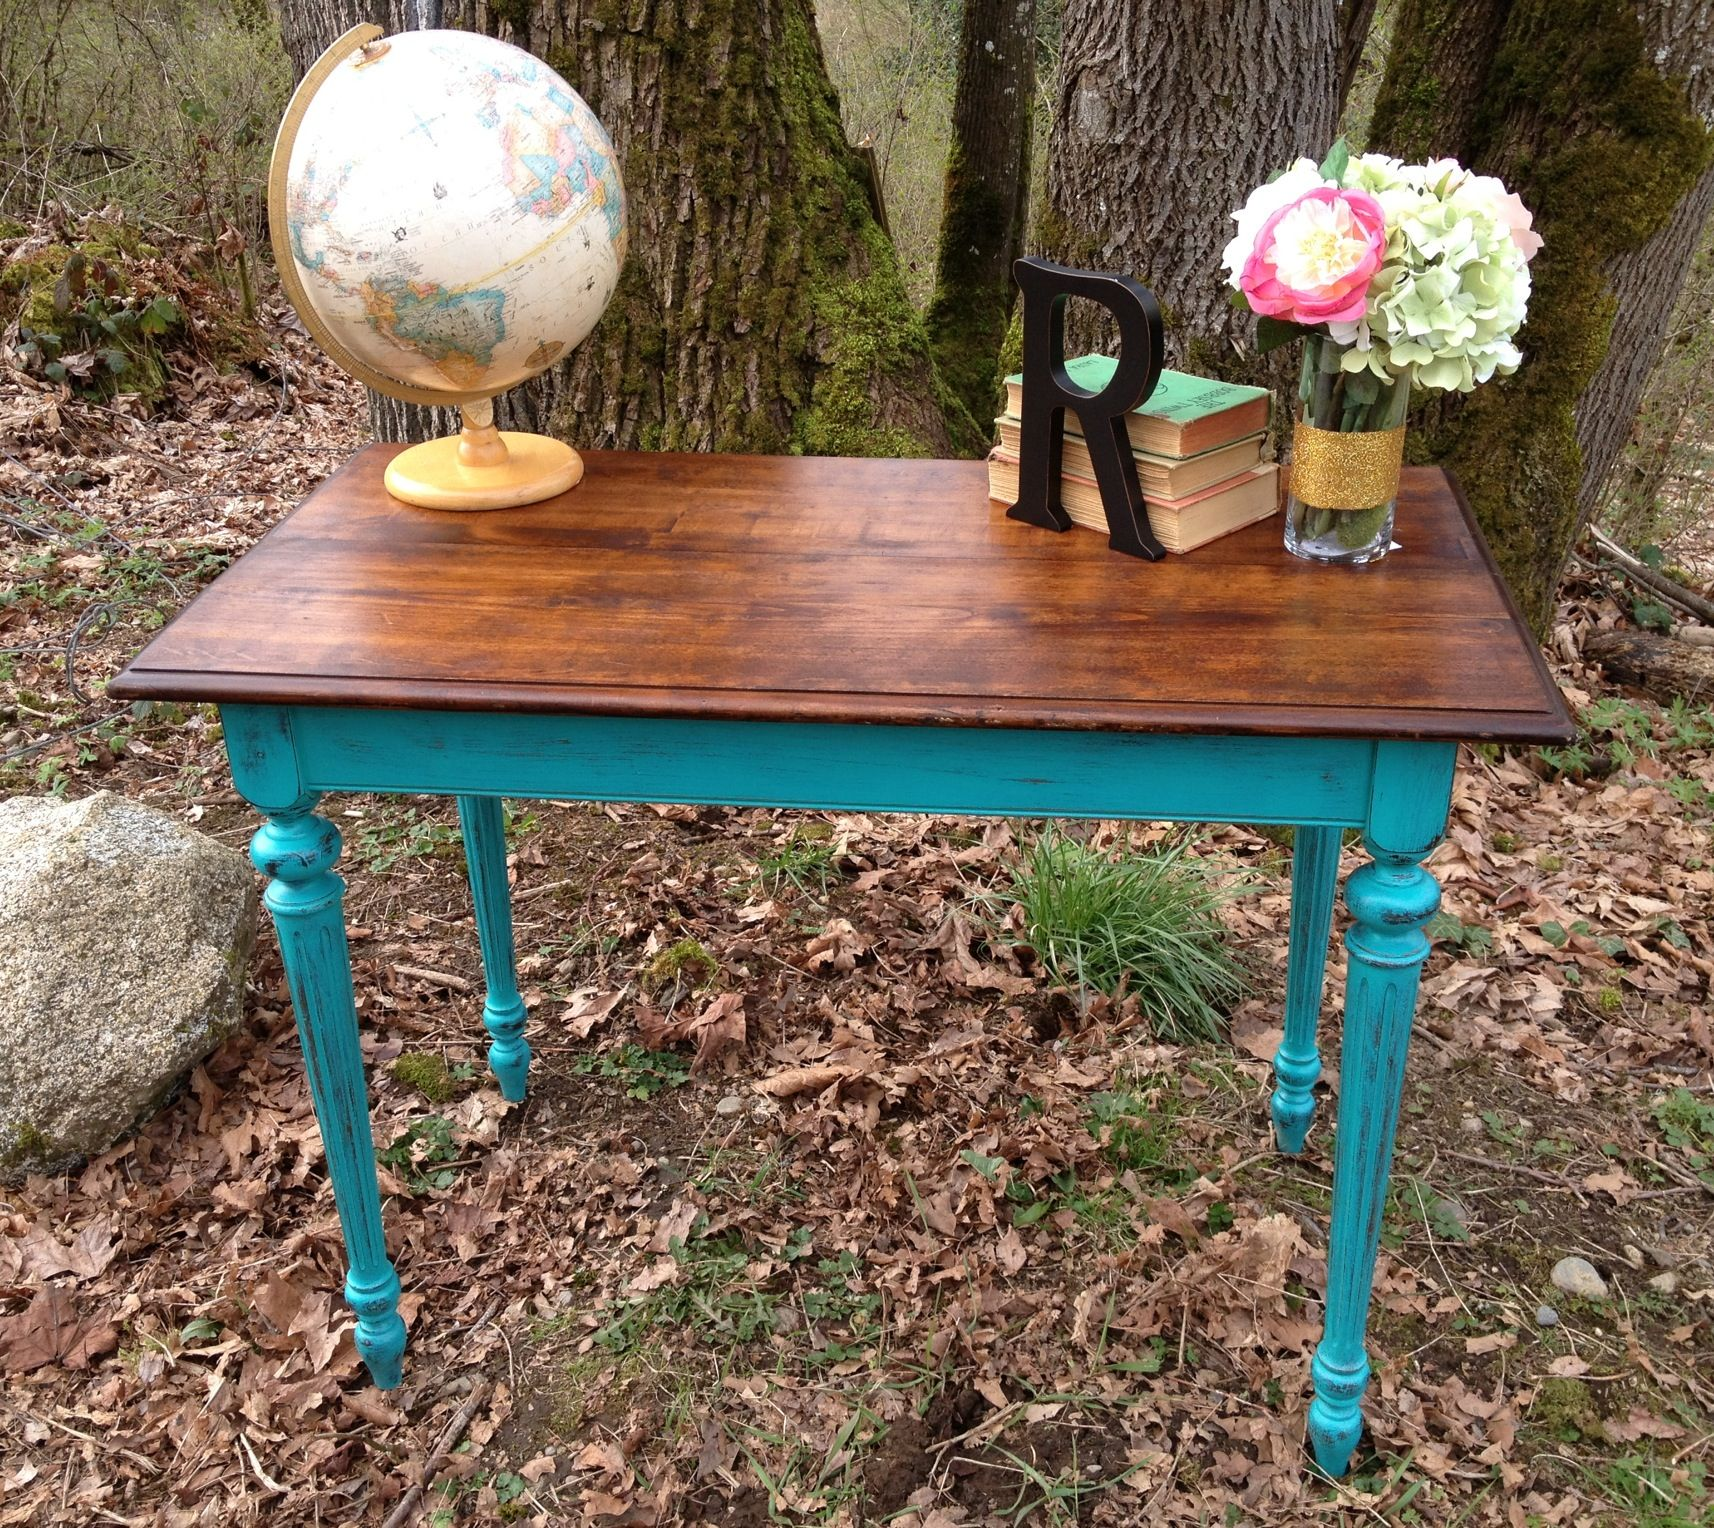 Vintage Sofa Table Painted With Maison Blanche Paint In Colette Sold Www Facebook Com Urbancot Farmhouse Style Furniture Wallpaper Furniture Shabby Furniture